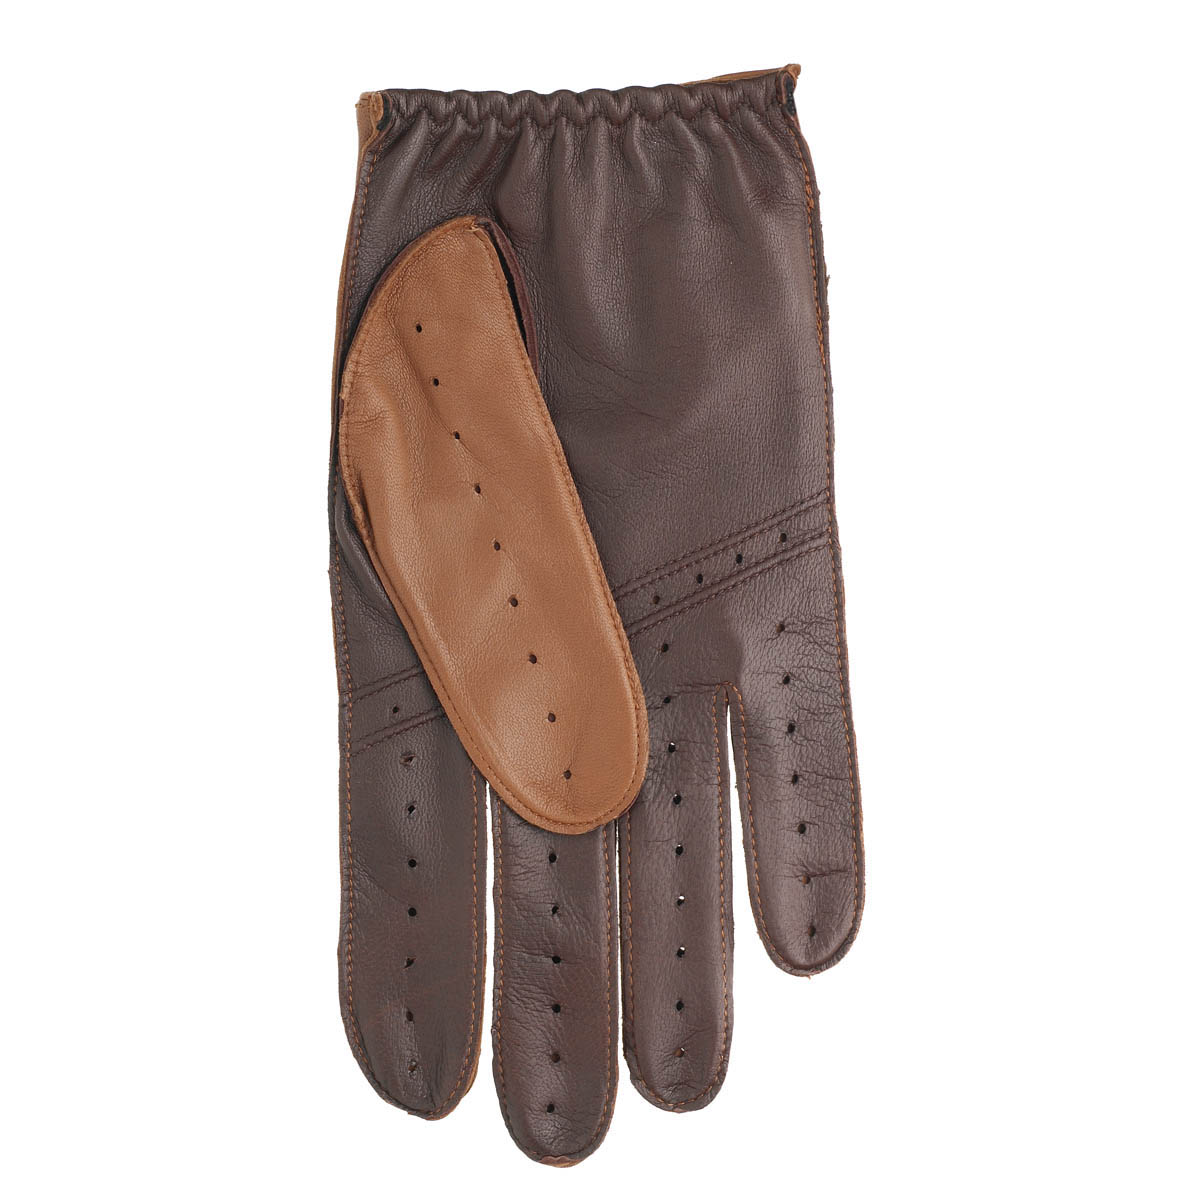 Leather driving gloves dents - Dents Leather Driving Gloves 5 1021 Cognac English